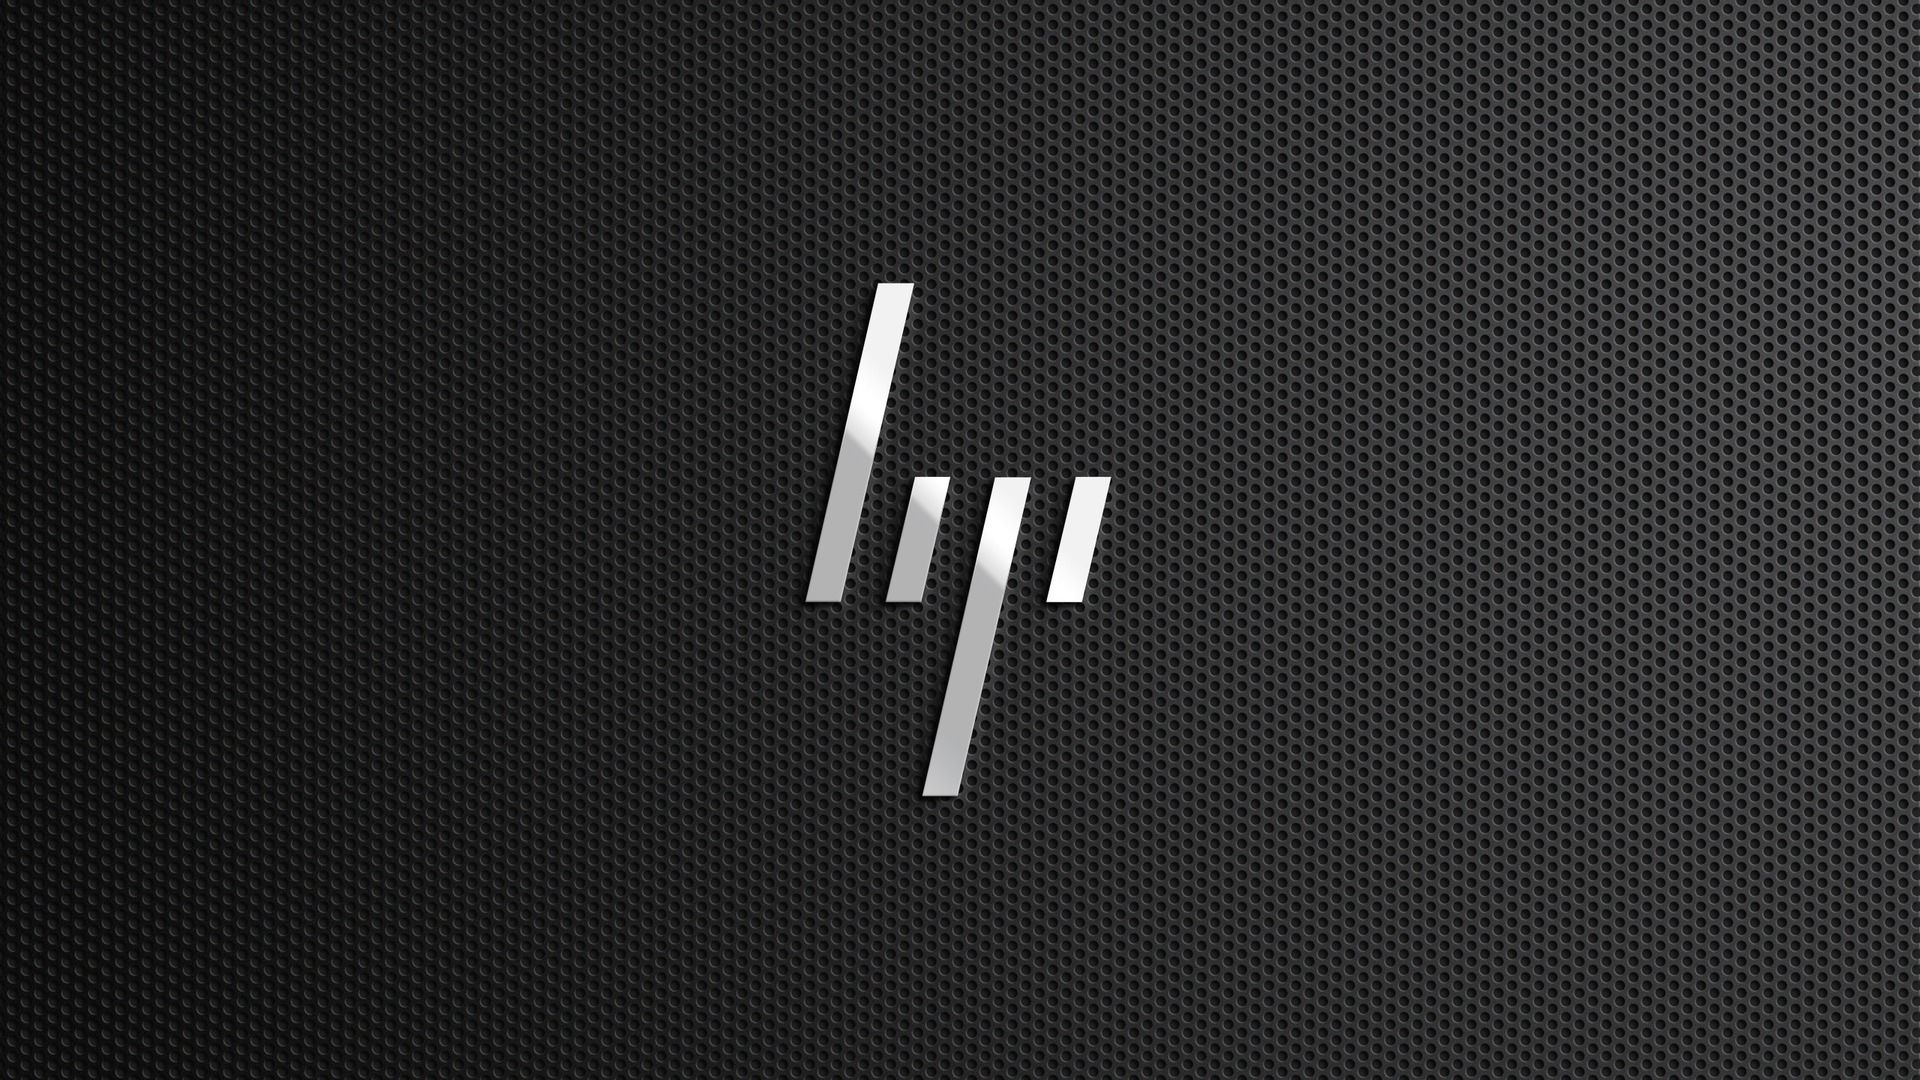 1920x1080 - Wallpapers for HP Envy 17